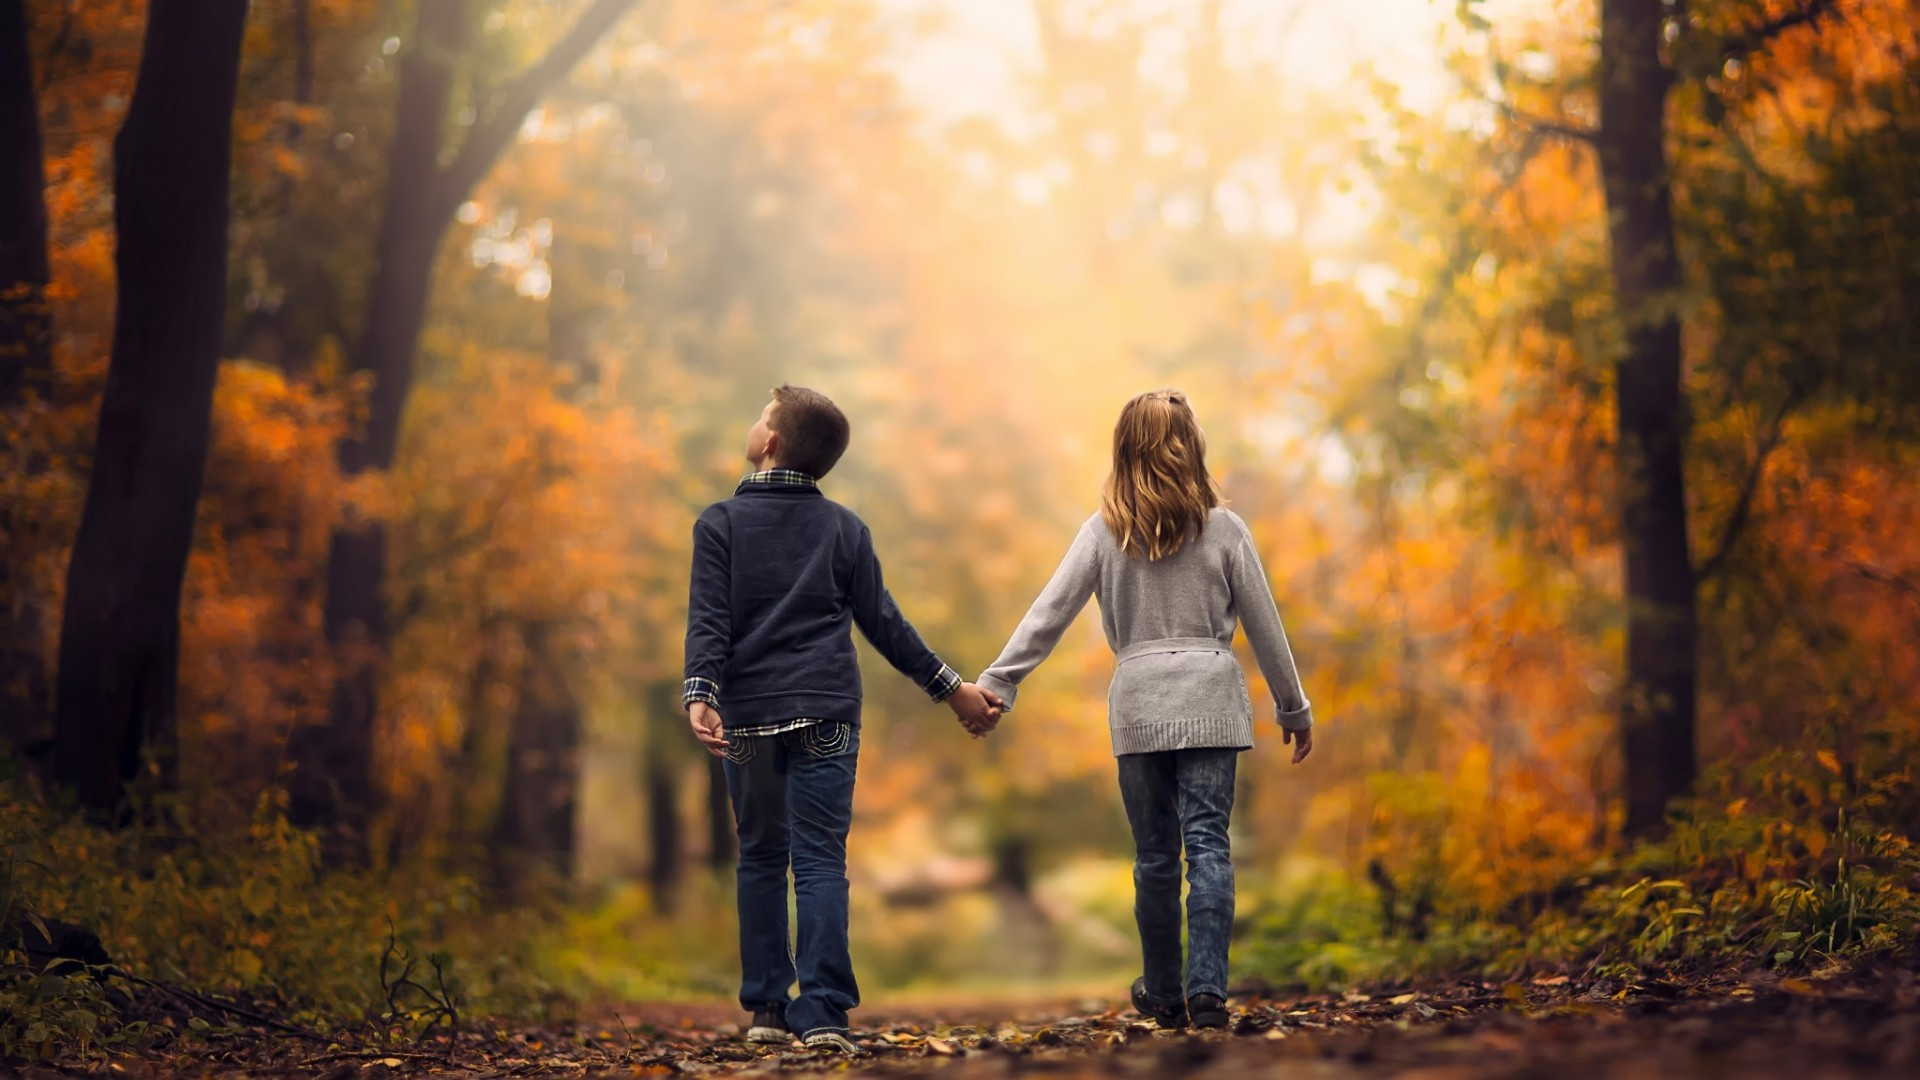 childhood Love Walk Wallpapers - 1920x1080 - 414453